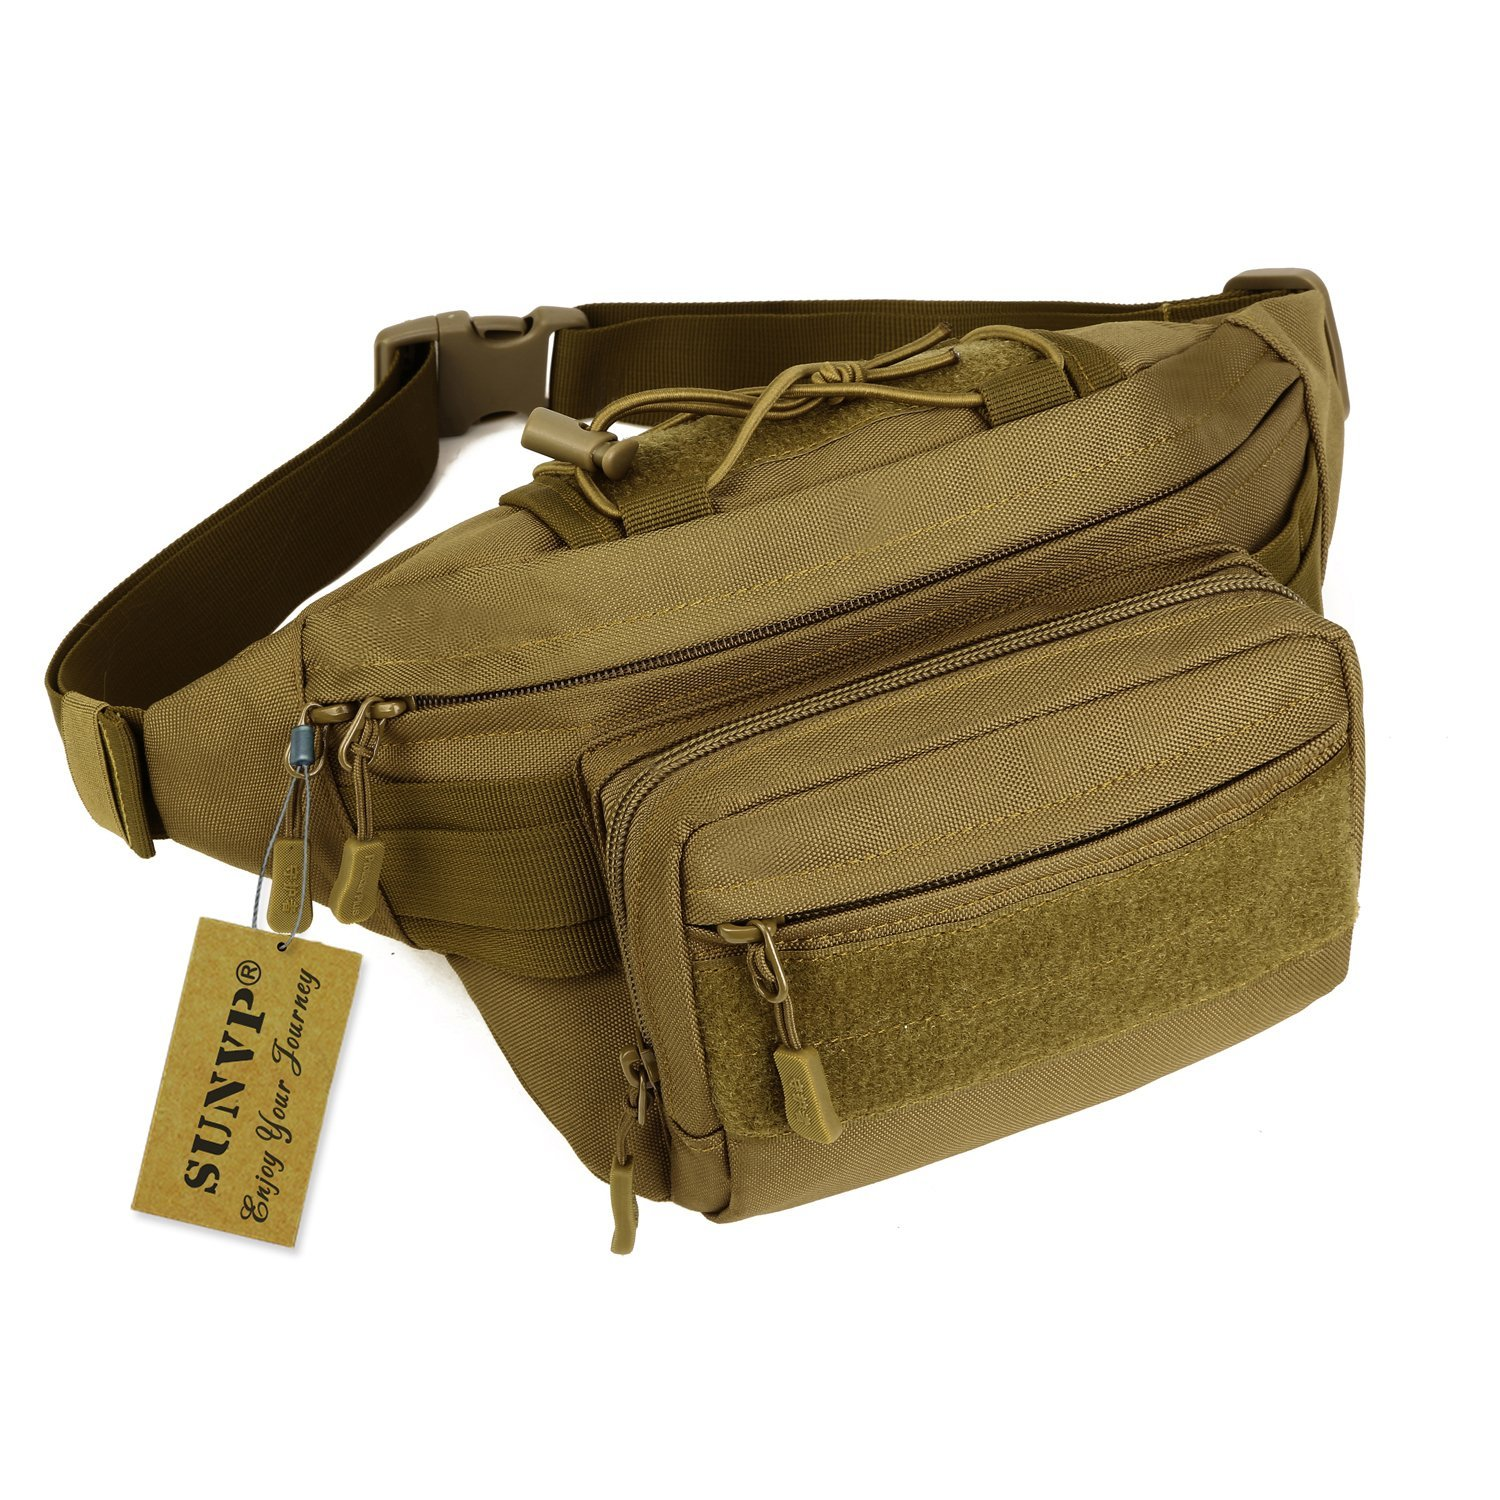 Huntvp Military Fanny Pack Tactical Waist Bag Pack Water-Resistant Hip Belt Bag Pouch Hiking Climbing Outdoor Bumbag